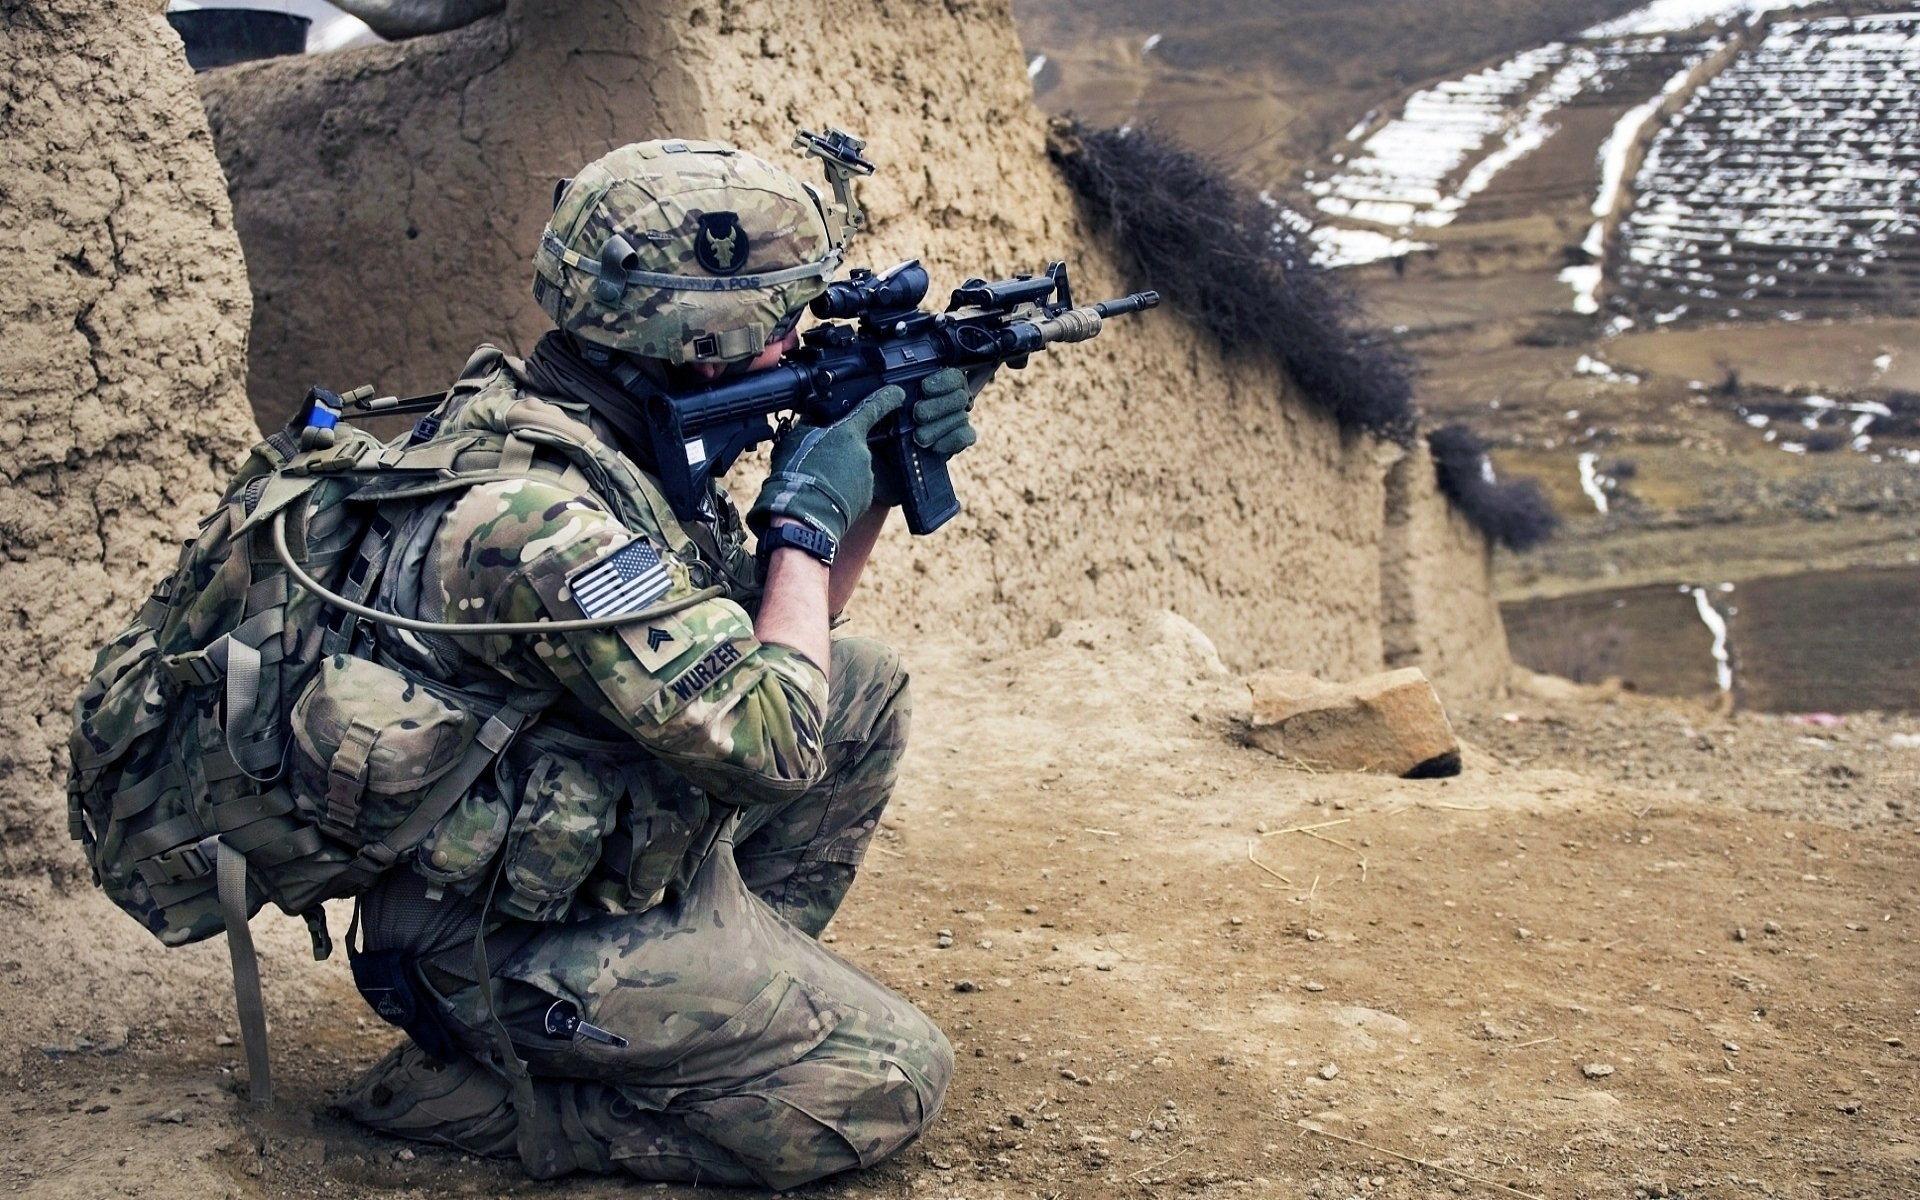 38 u.s. army infantry hd wallpapers   background images - wallpaper